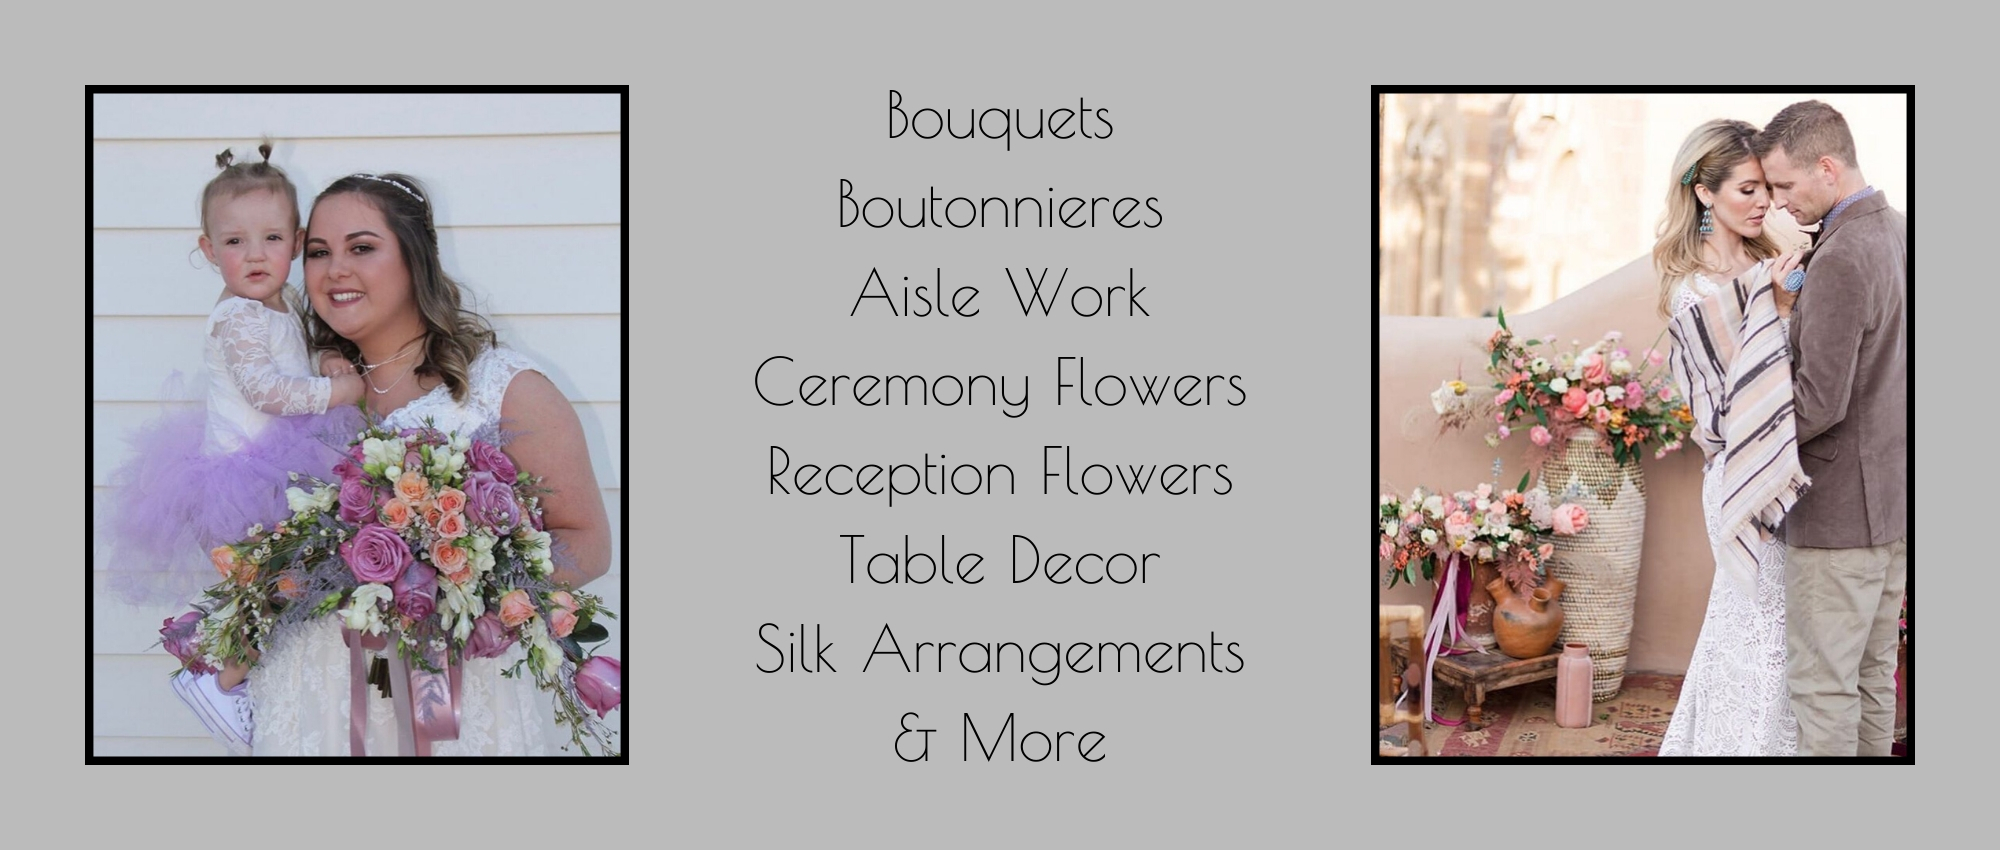 wedding flower services